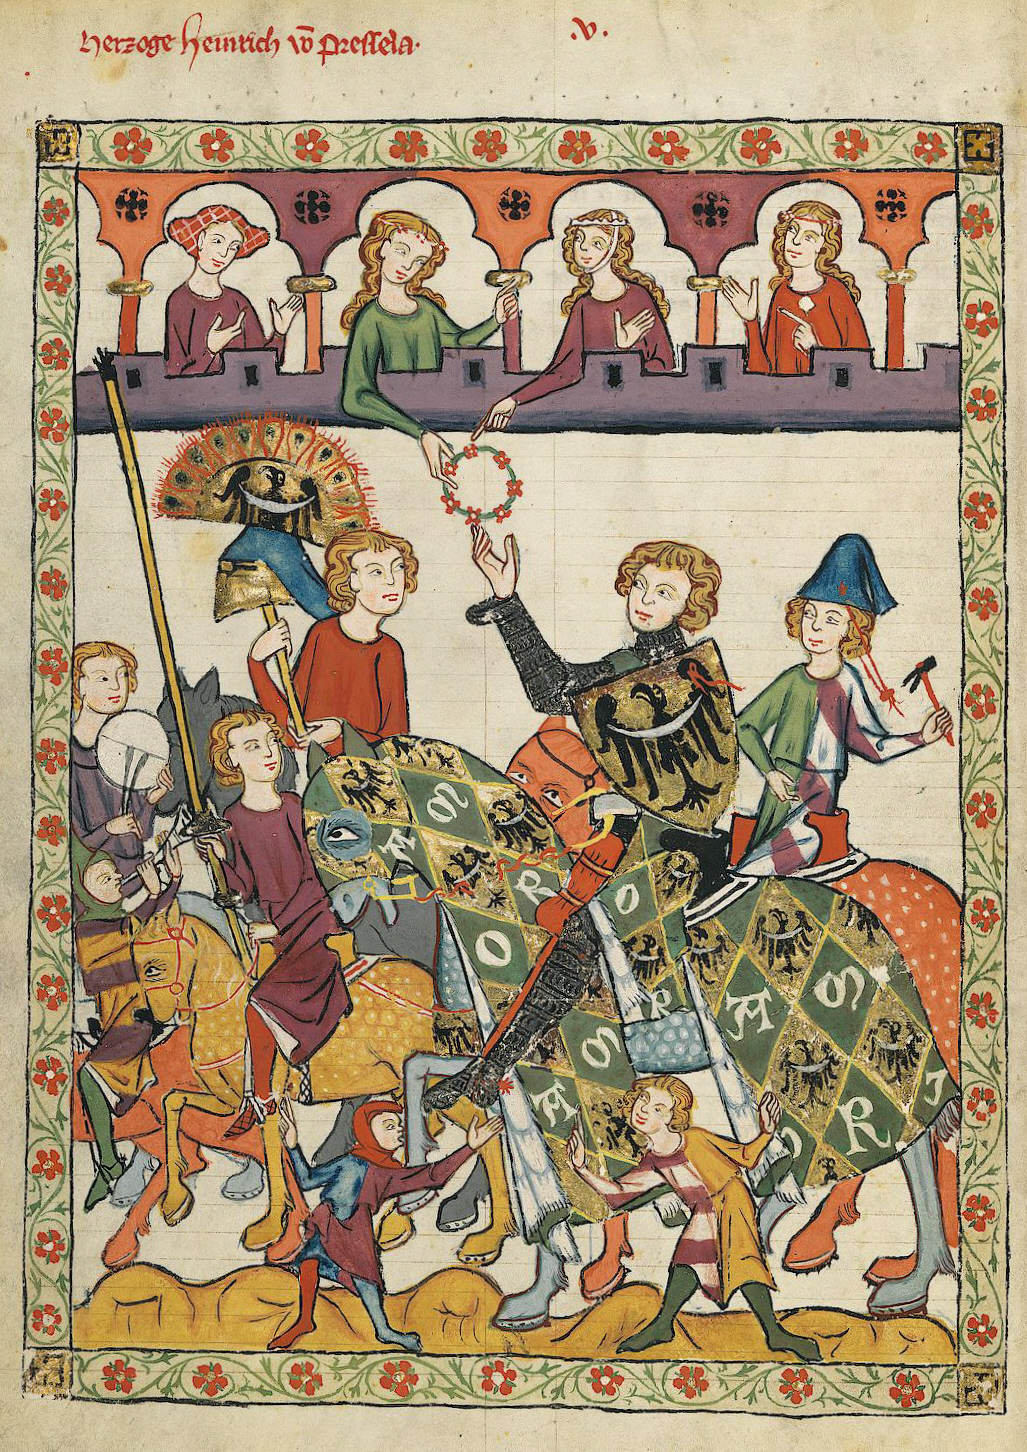 A knight receiving a lady's favour at a tournament, illustration of Codex Manesse, cr. 1304 or cr. 1340, Zürich, Switzerland